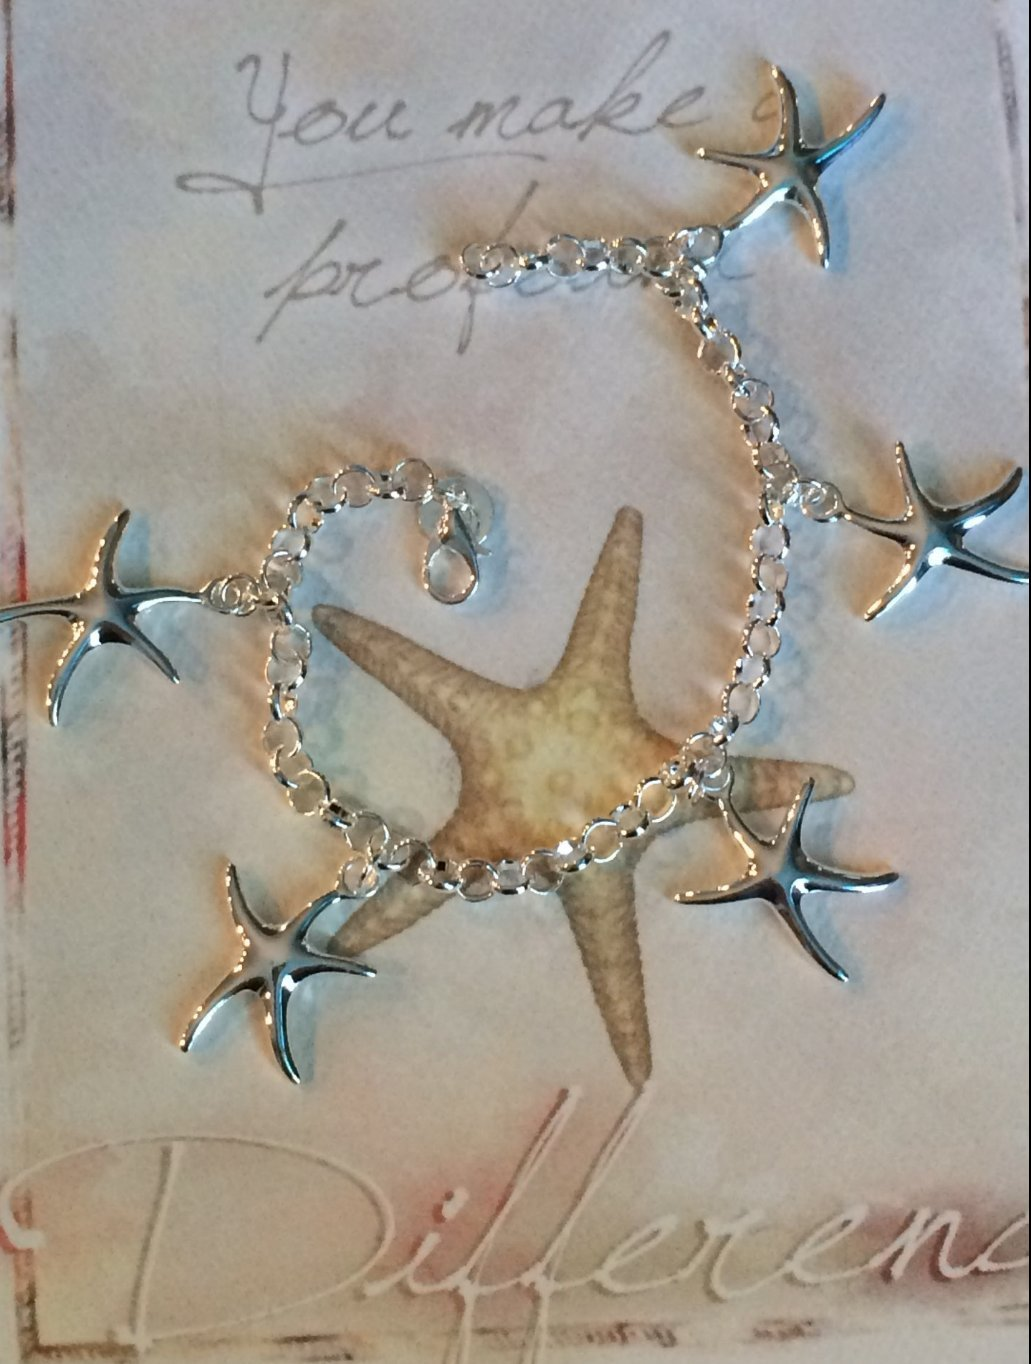 Starfish poem card - Smiling Wisdom Starfish Charm Bracelet Gift Set You Make A Profound Difference Thank You